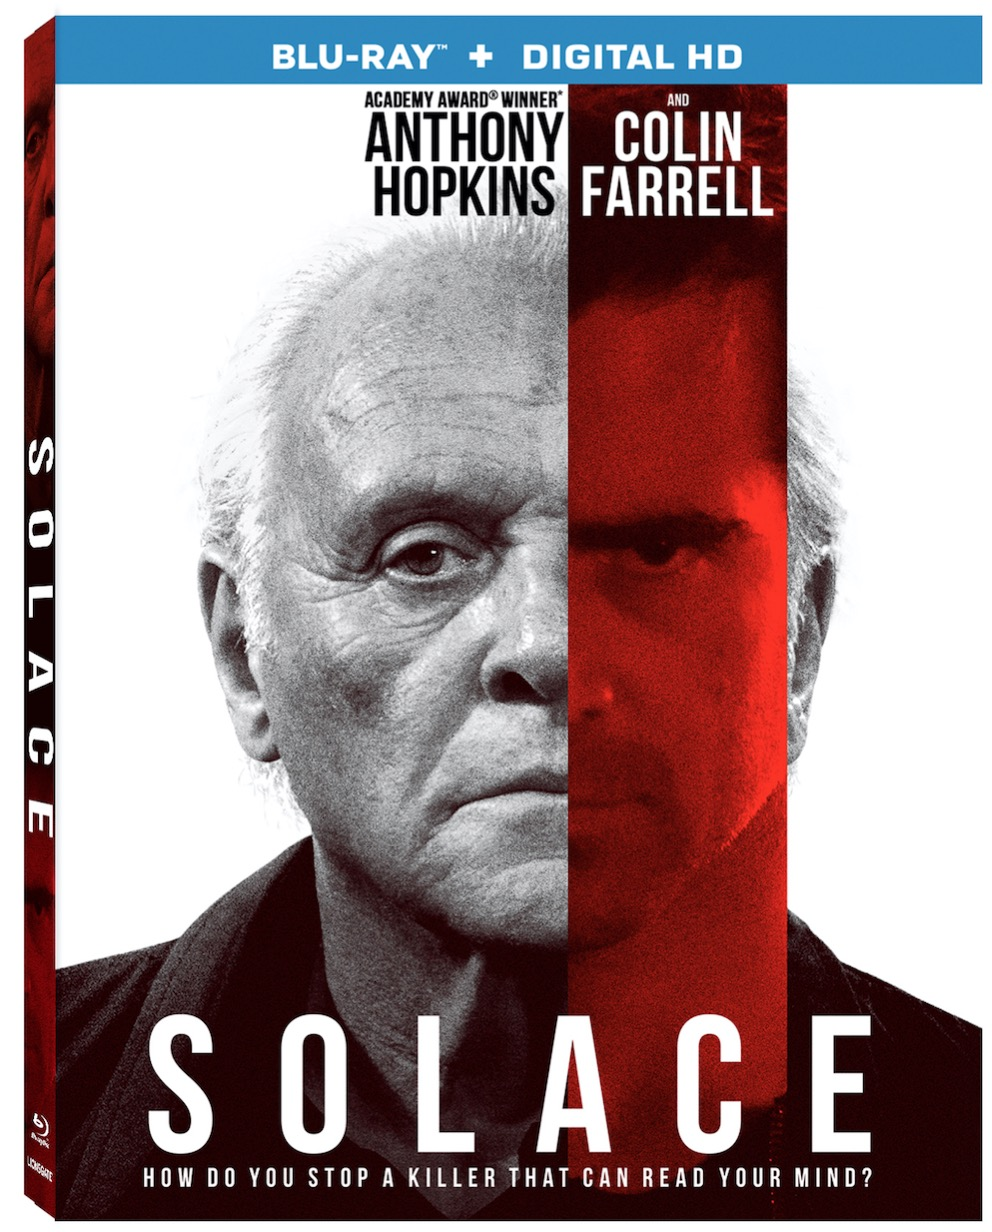 Solace Blu-ray Review